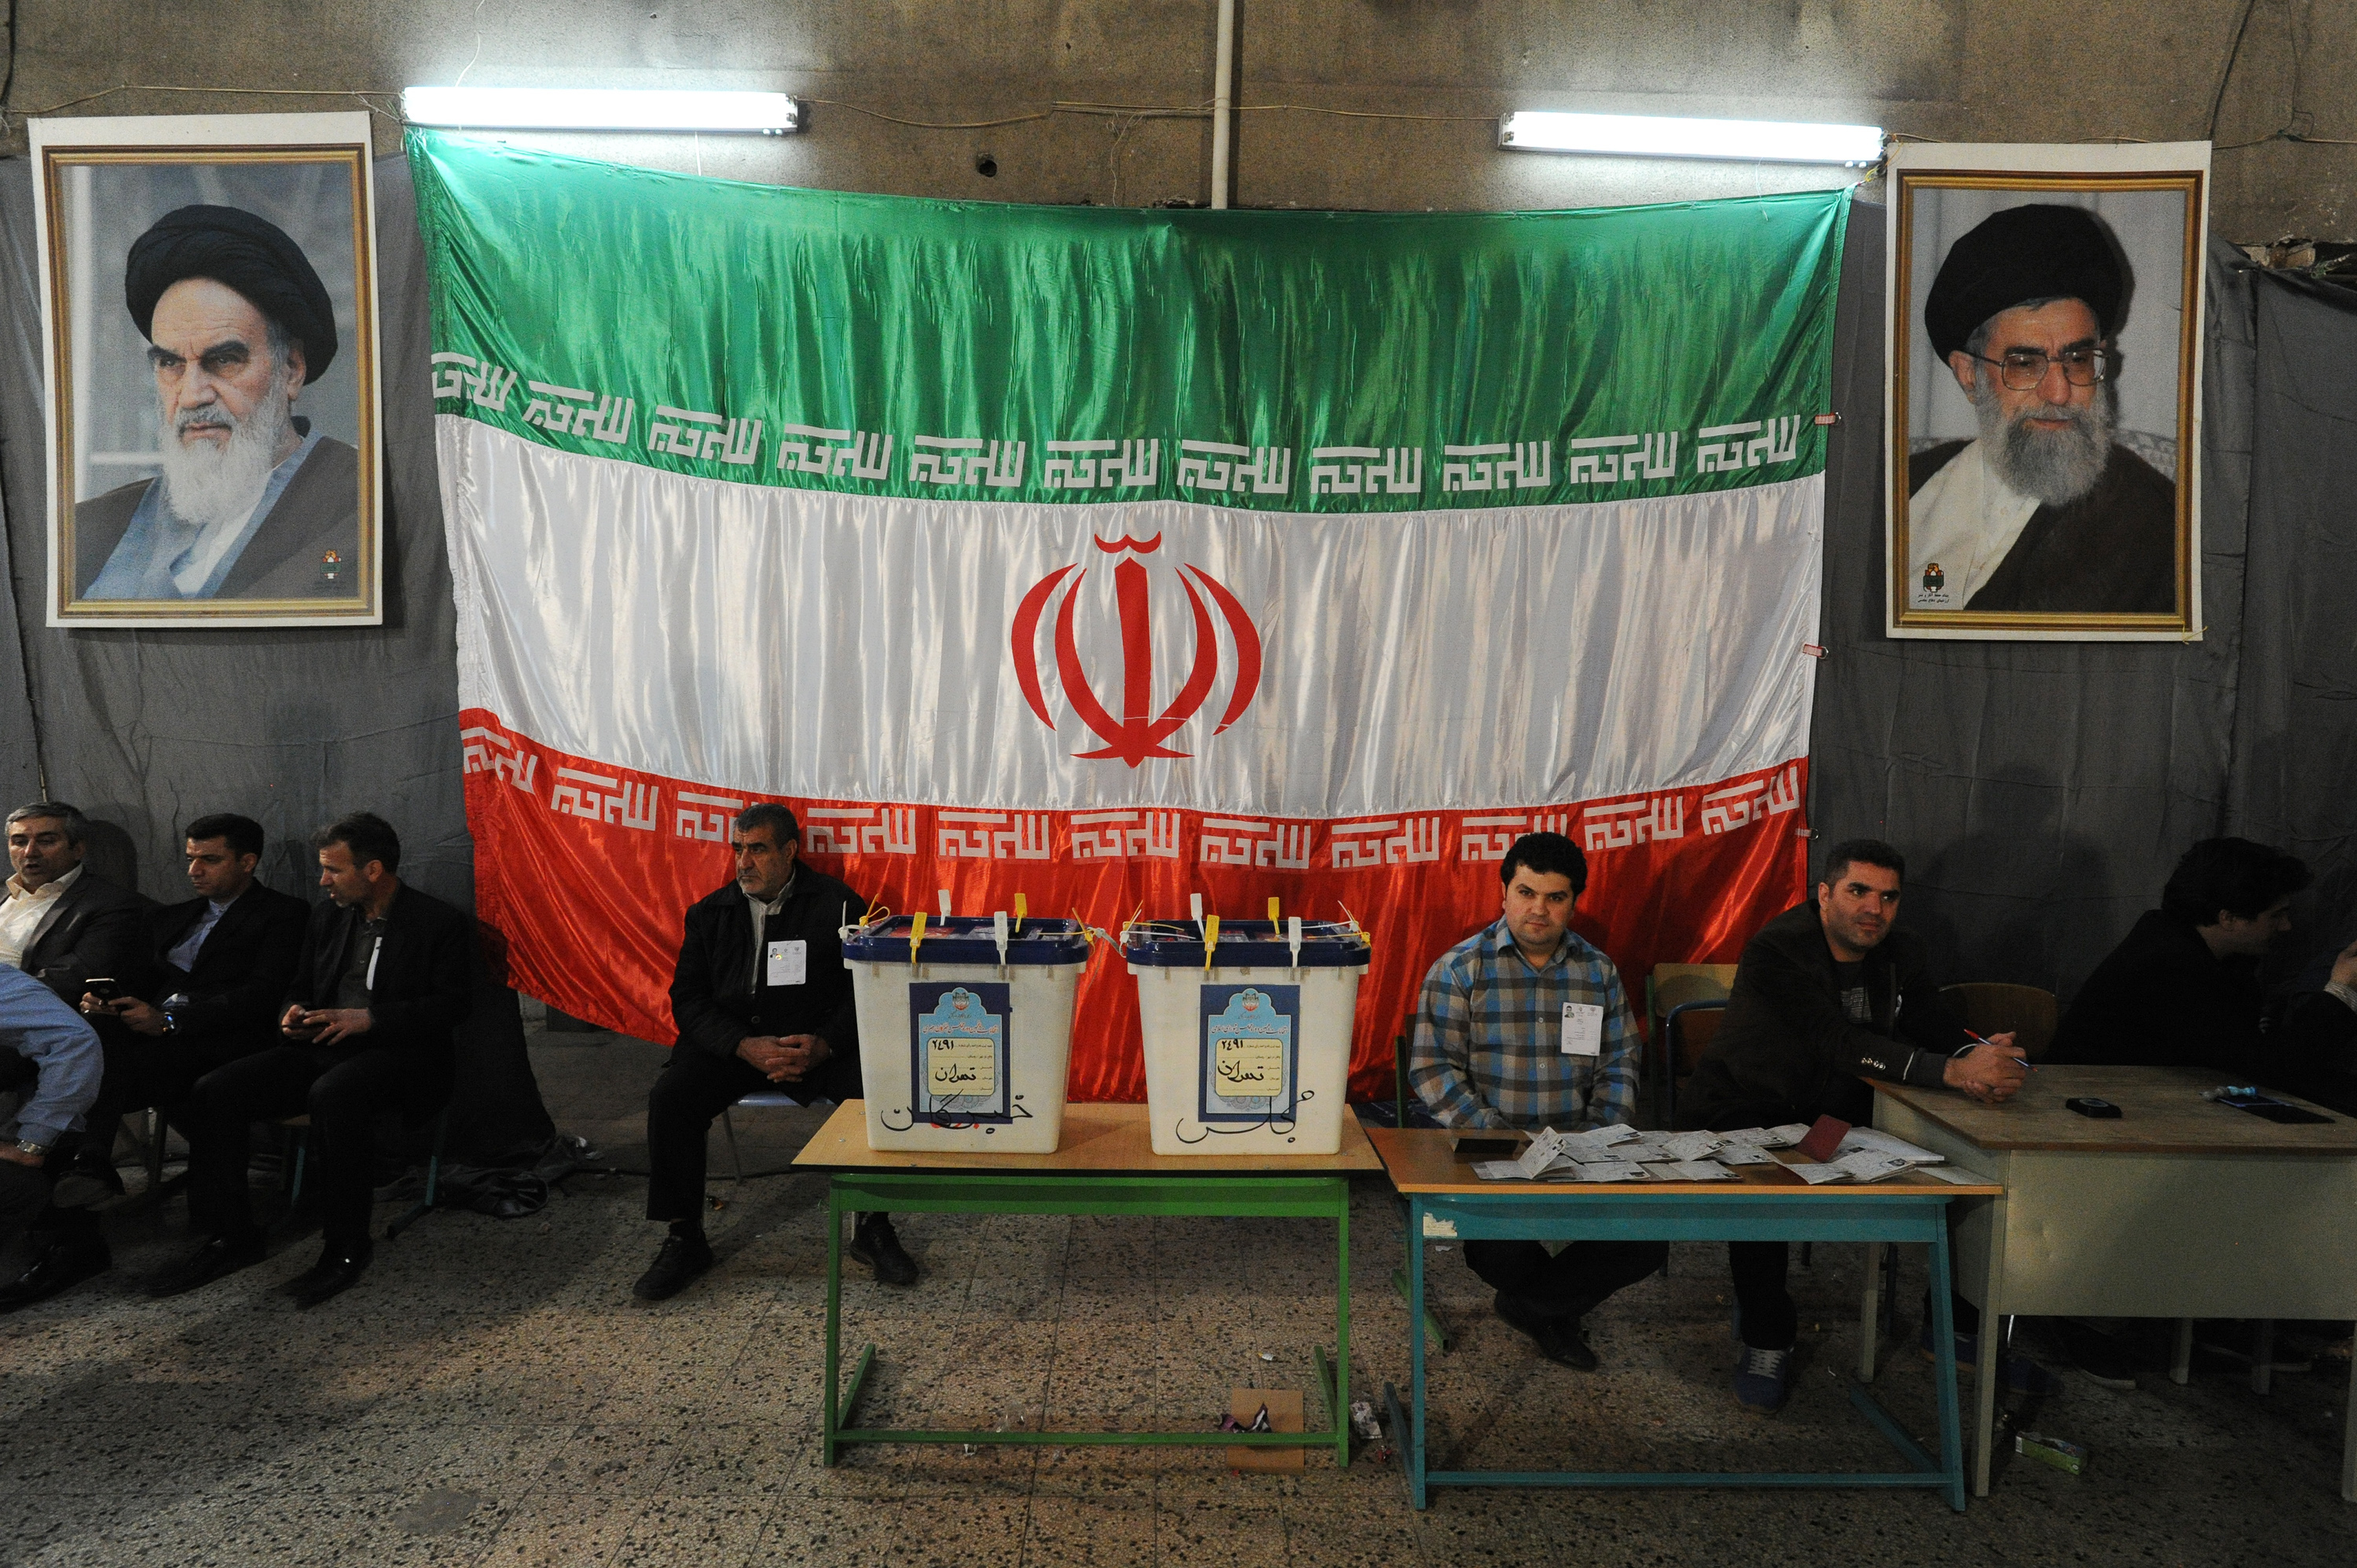 Iranians vote in key elections for Parliament and the Assembly of Experts at the Rasoul mosque in the Nazi Abad district of south Tehran on Feb. 26, 2016.